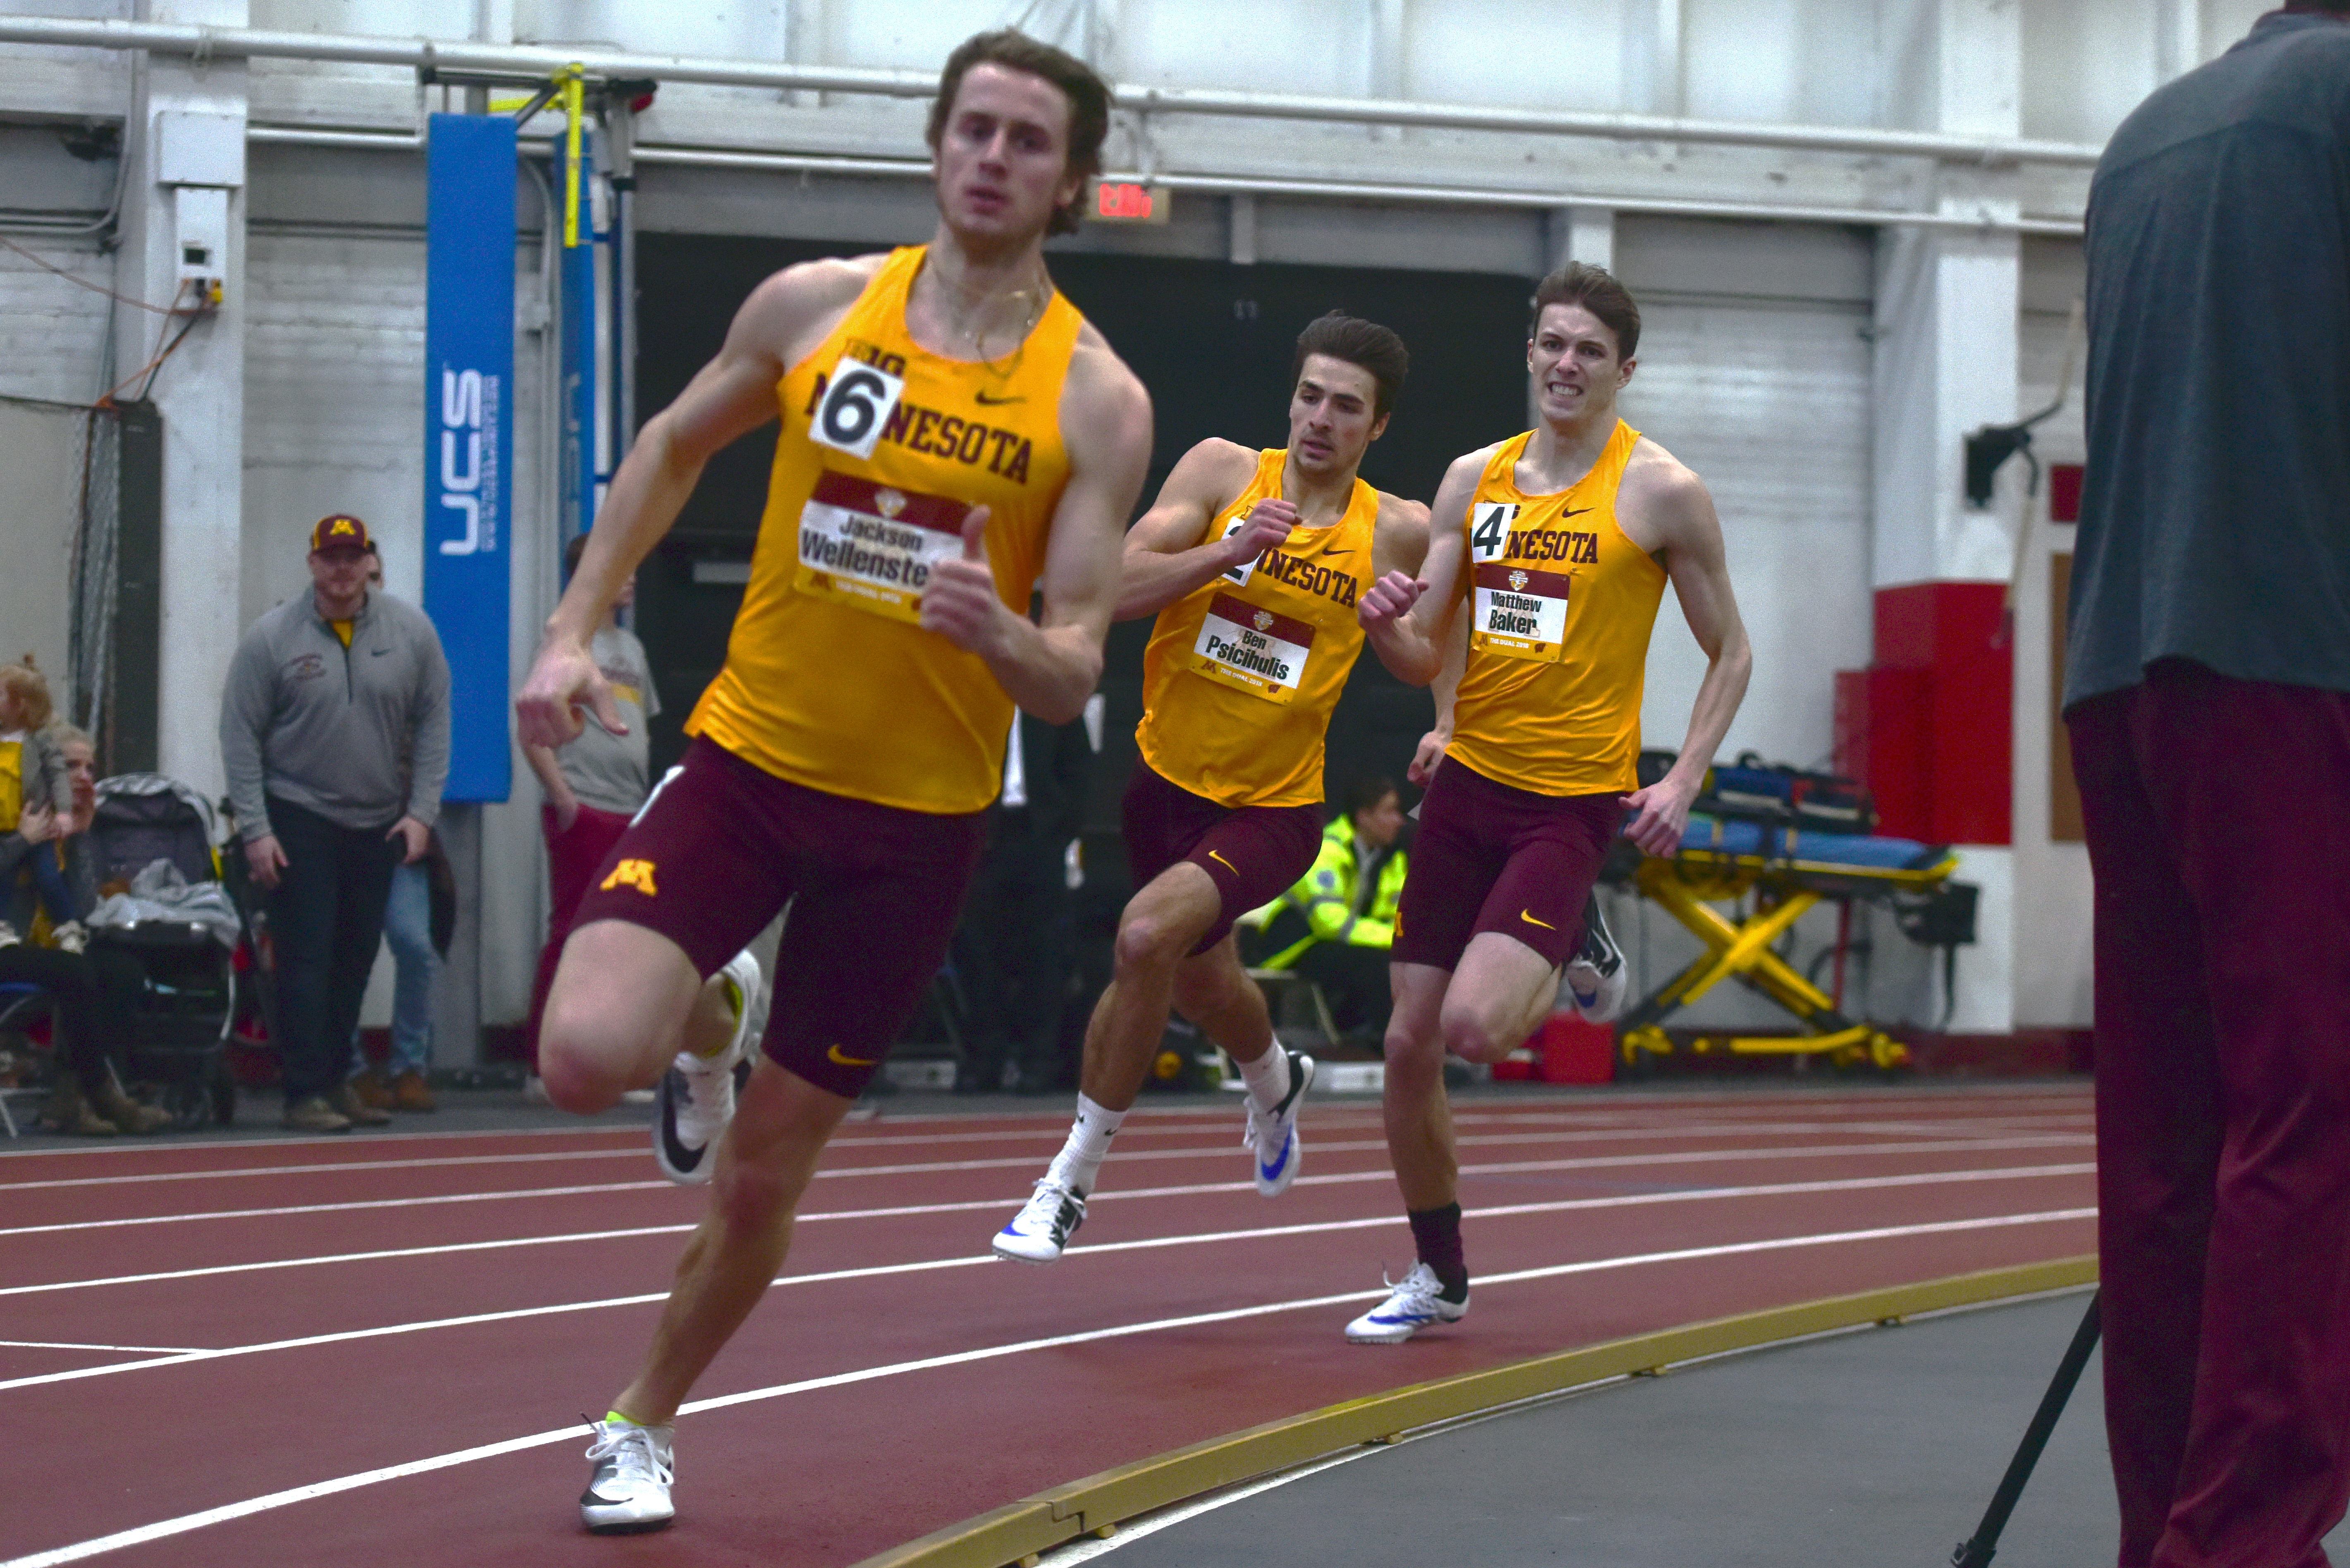 Gophers Jackson Wellenstein, Ben Psicihulis, and Matthew Baker compete in the 4x400-meter relay during the Border Battle on Saturday. The relay team finished 3:18.73, helping secure the Gopher's fourth-consecutive Border Battle title.